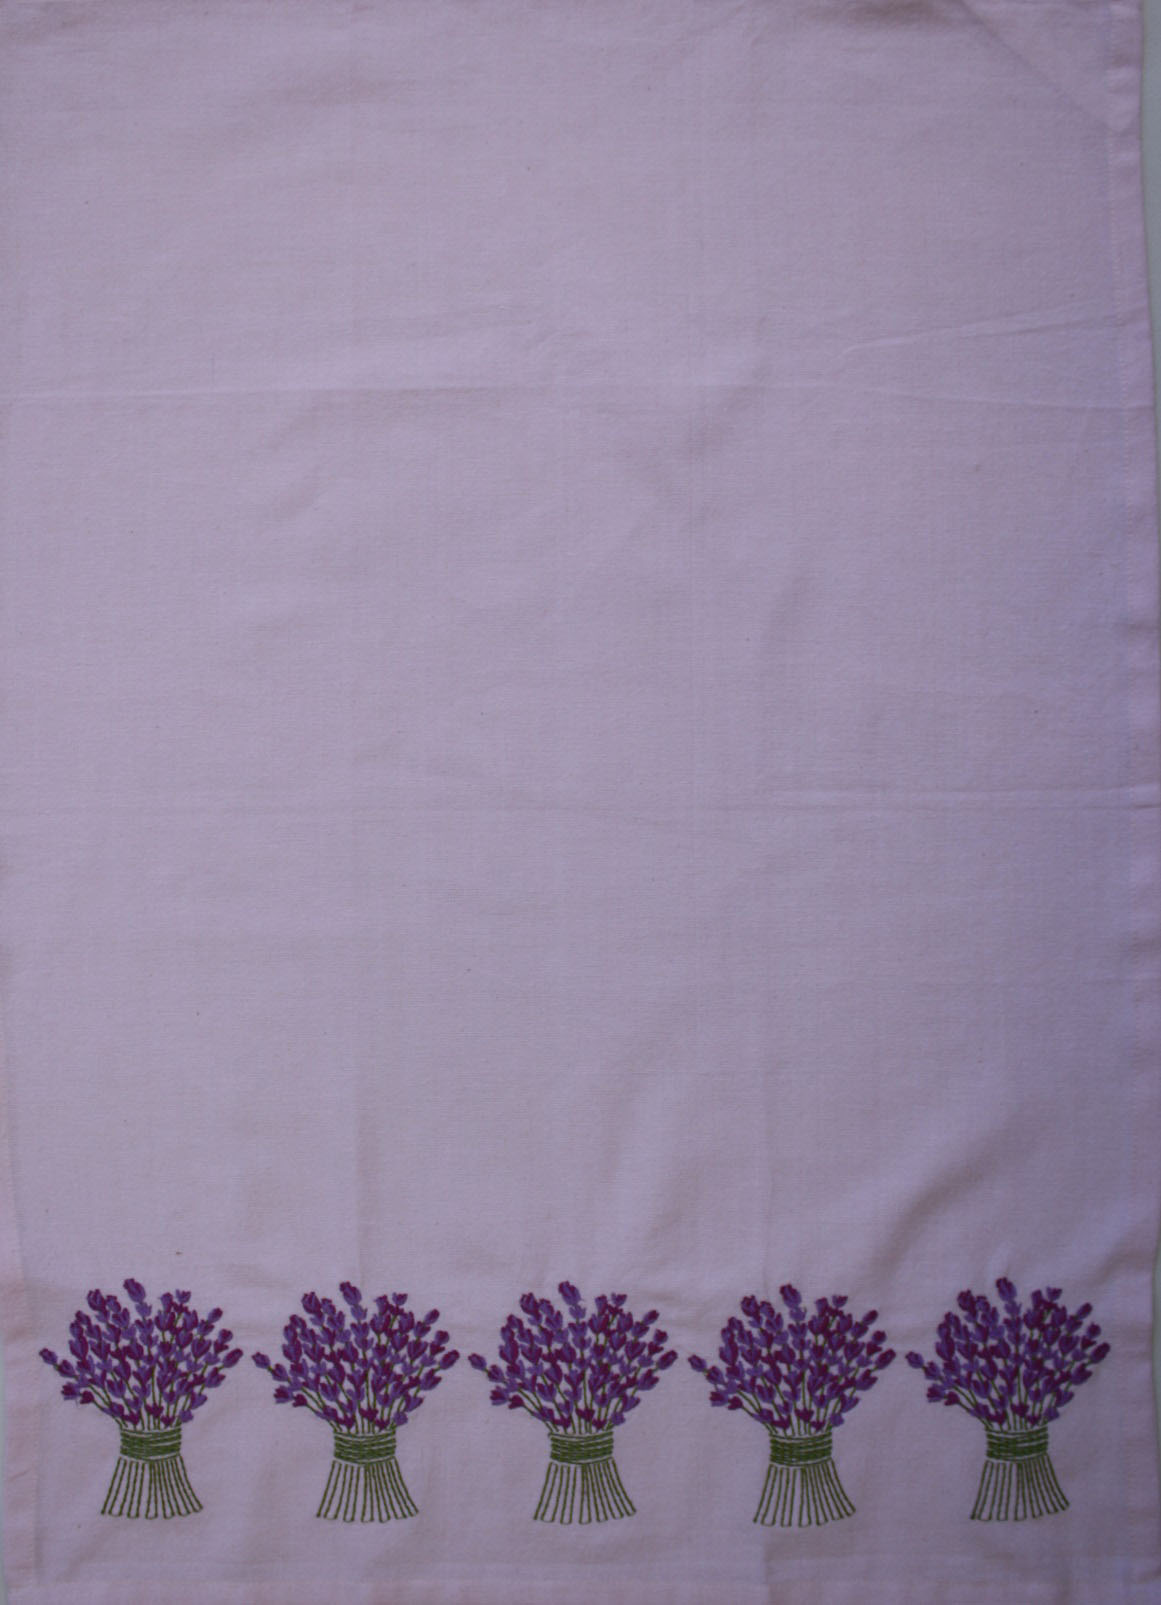 Tea Towel - Lavender Bouquet Border Embroidery